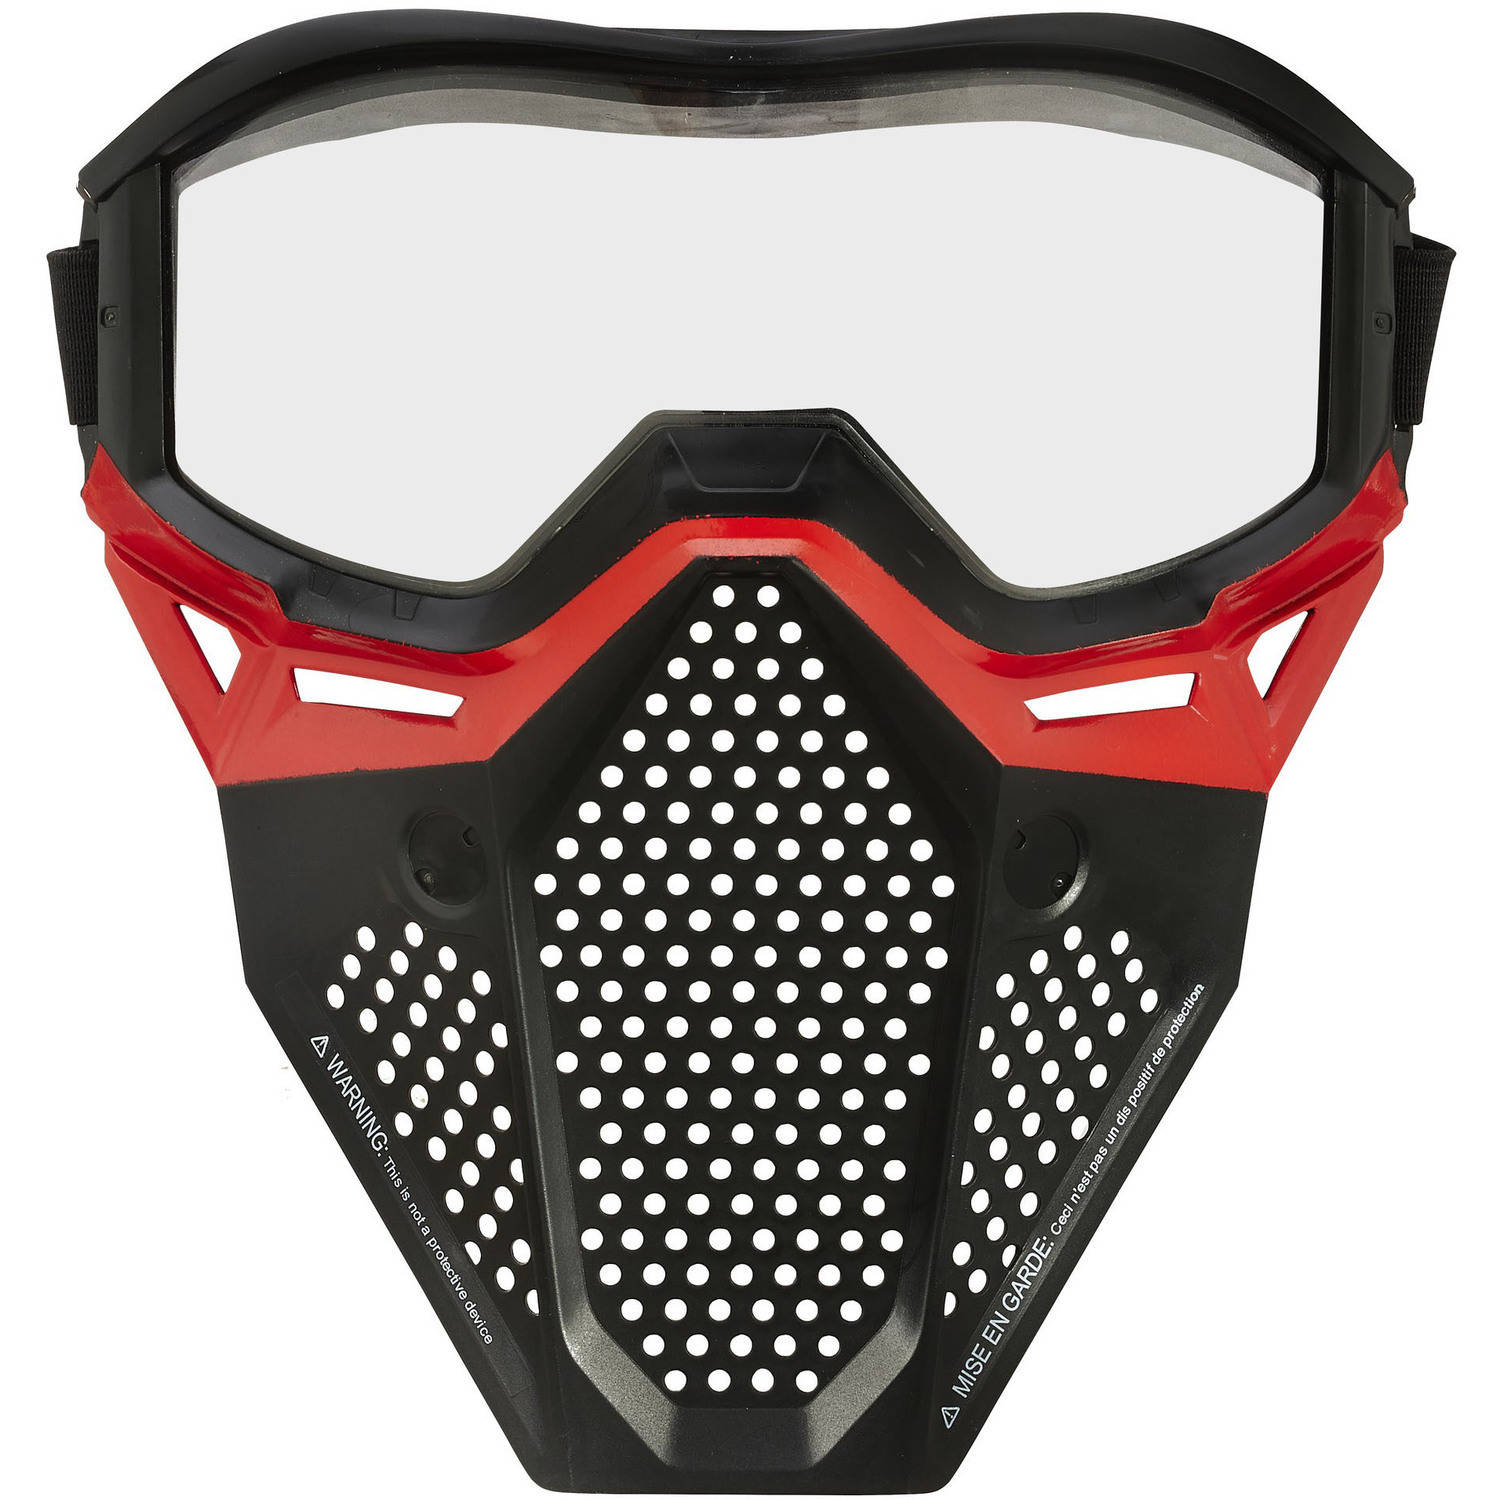 Nerf Rival Face Mask, Red by Hasbro